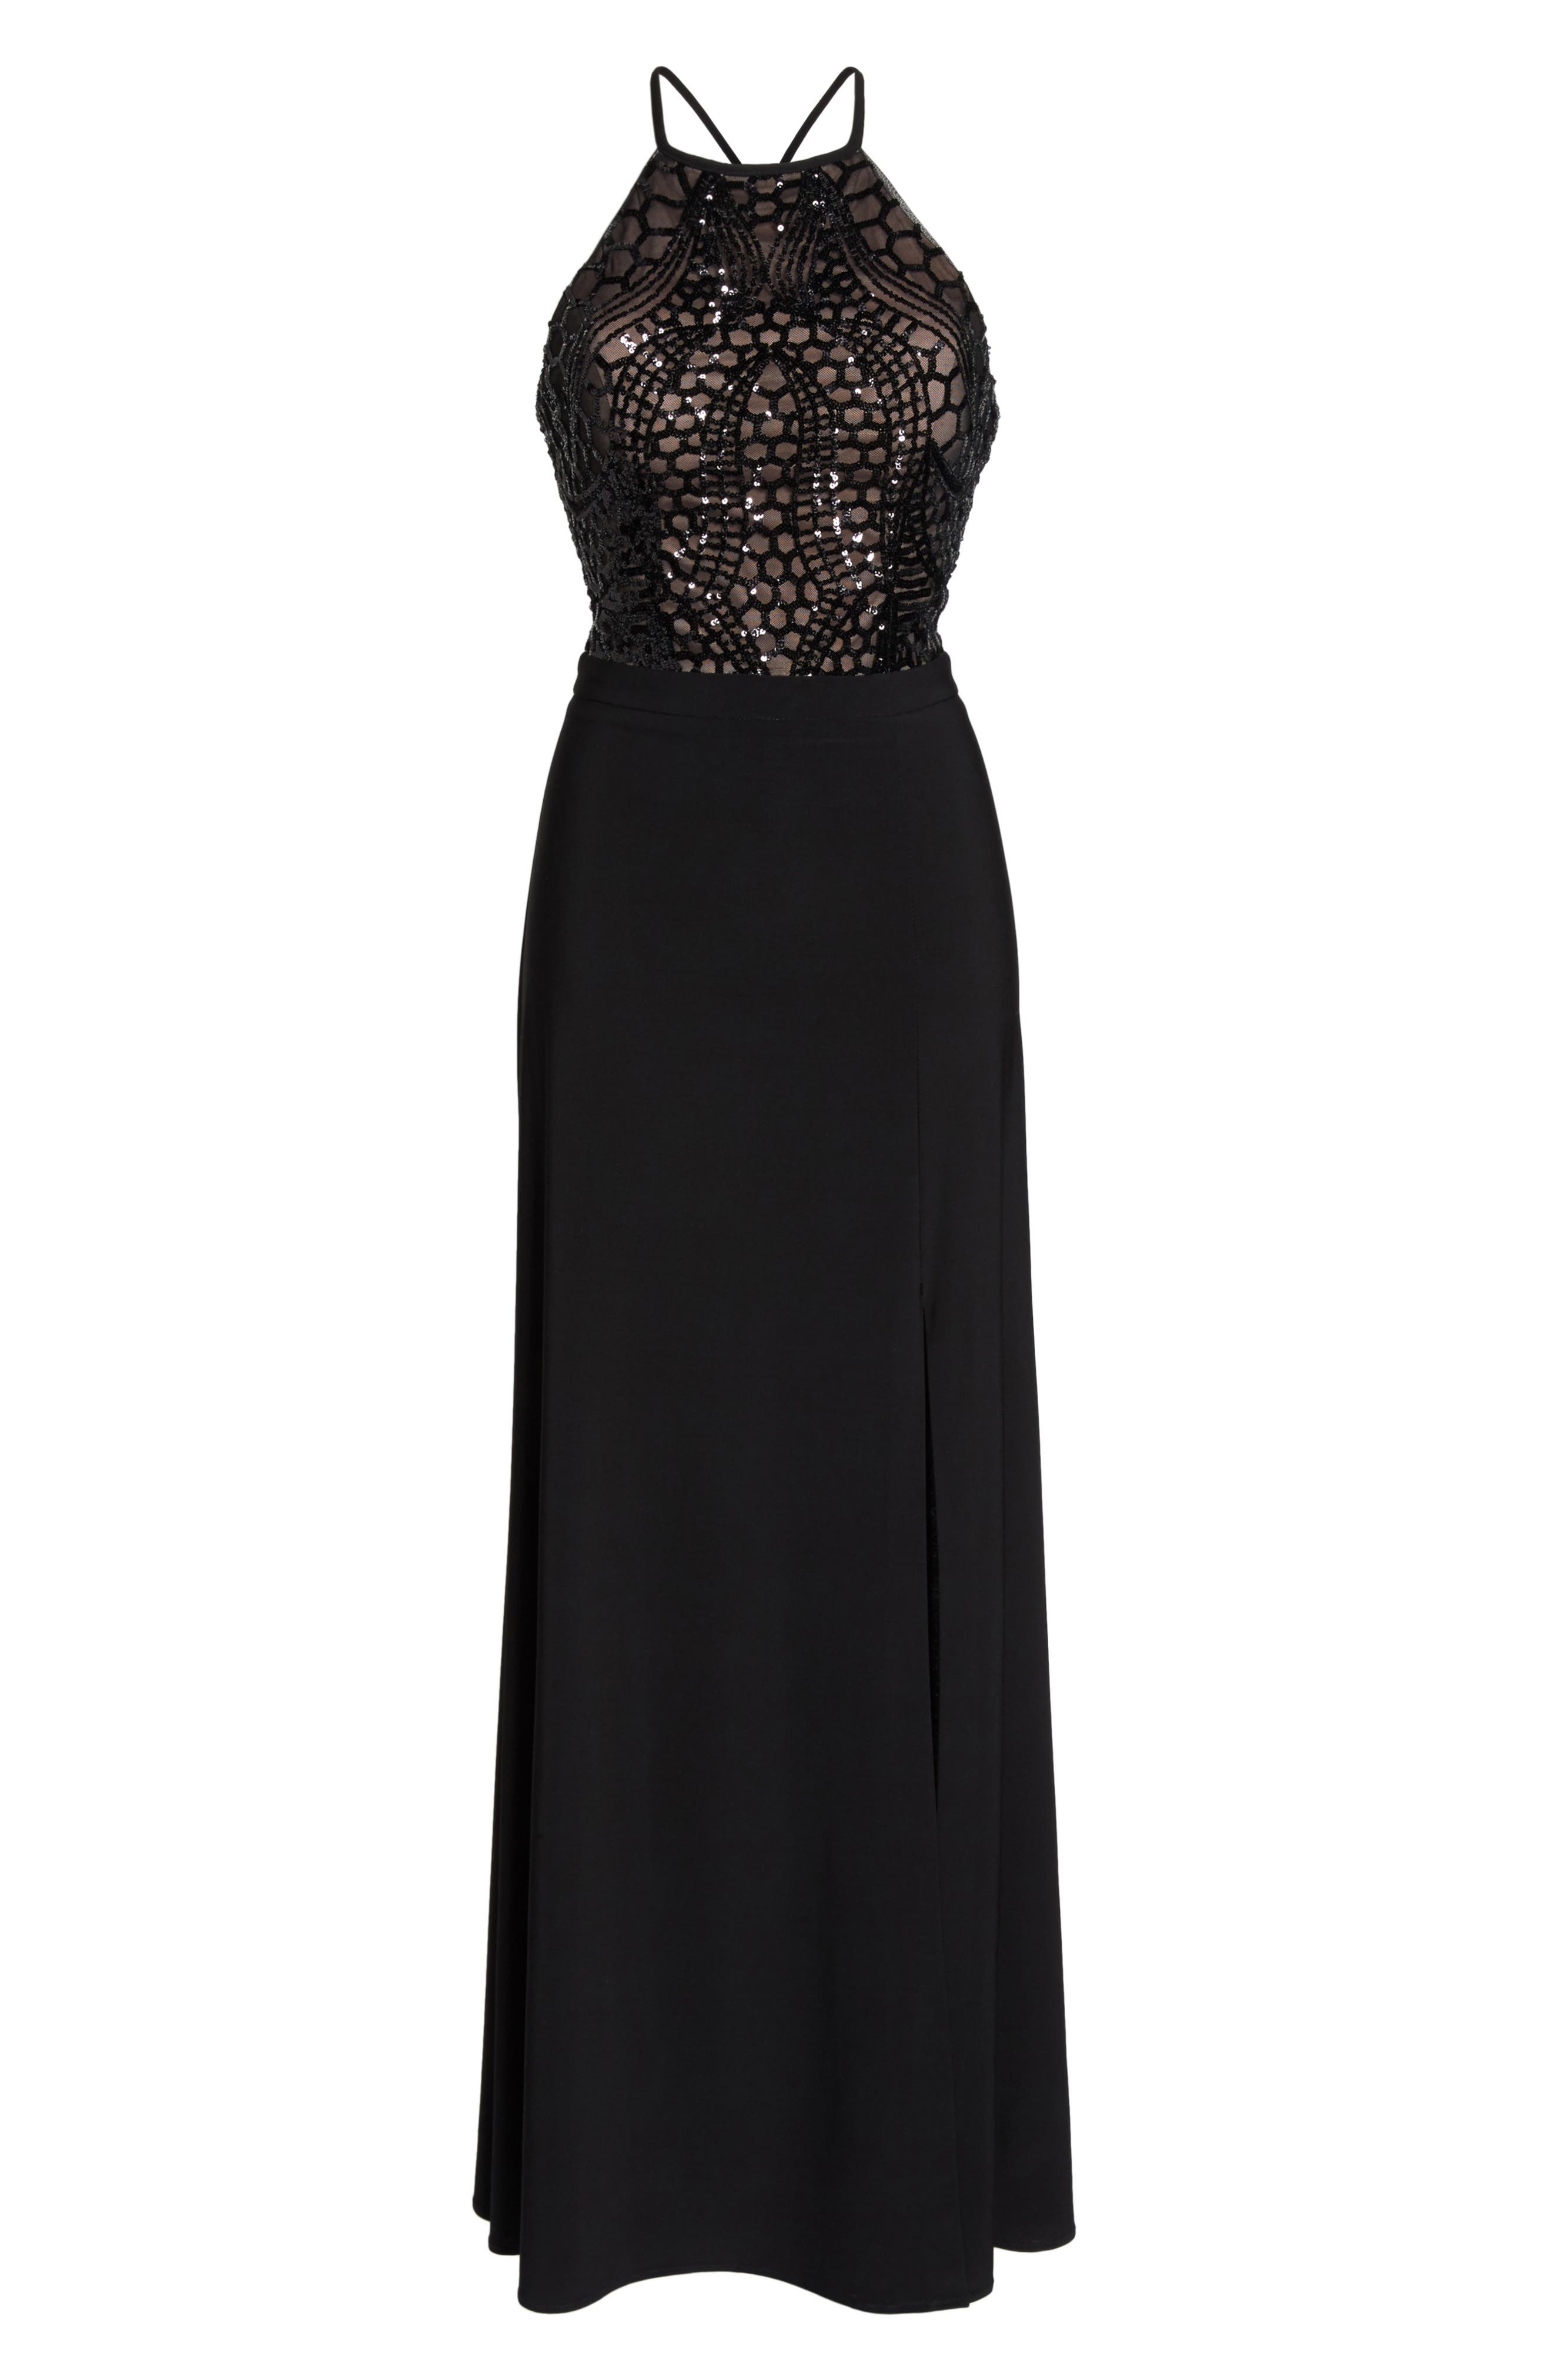 MORGAN & CO.,                             Sequin Halter Gown,                             Alternate thumbnail 6, color,                             BLACK/ NUDE